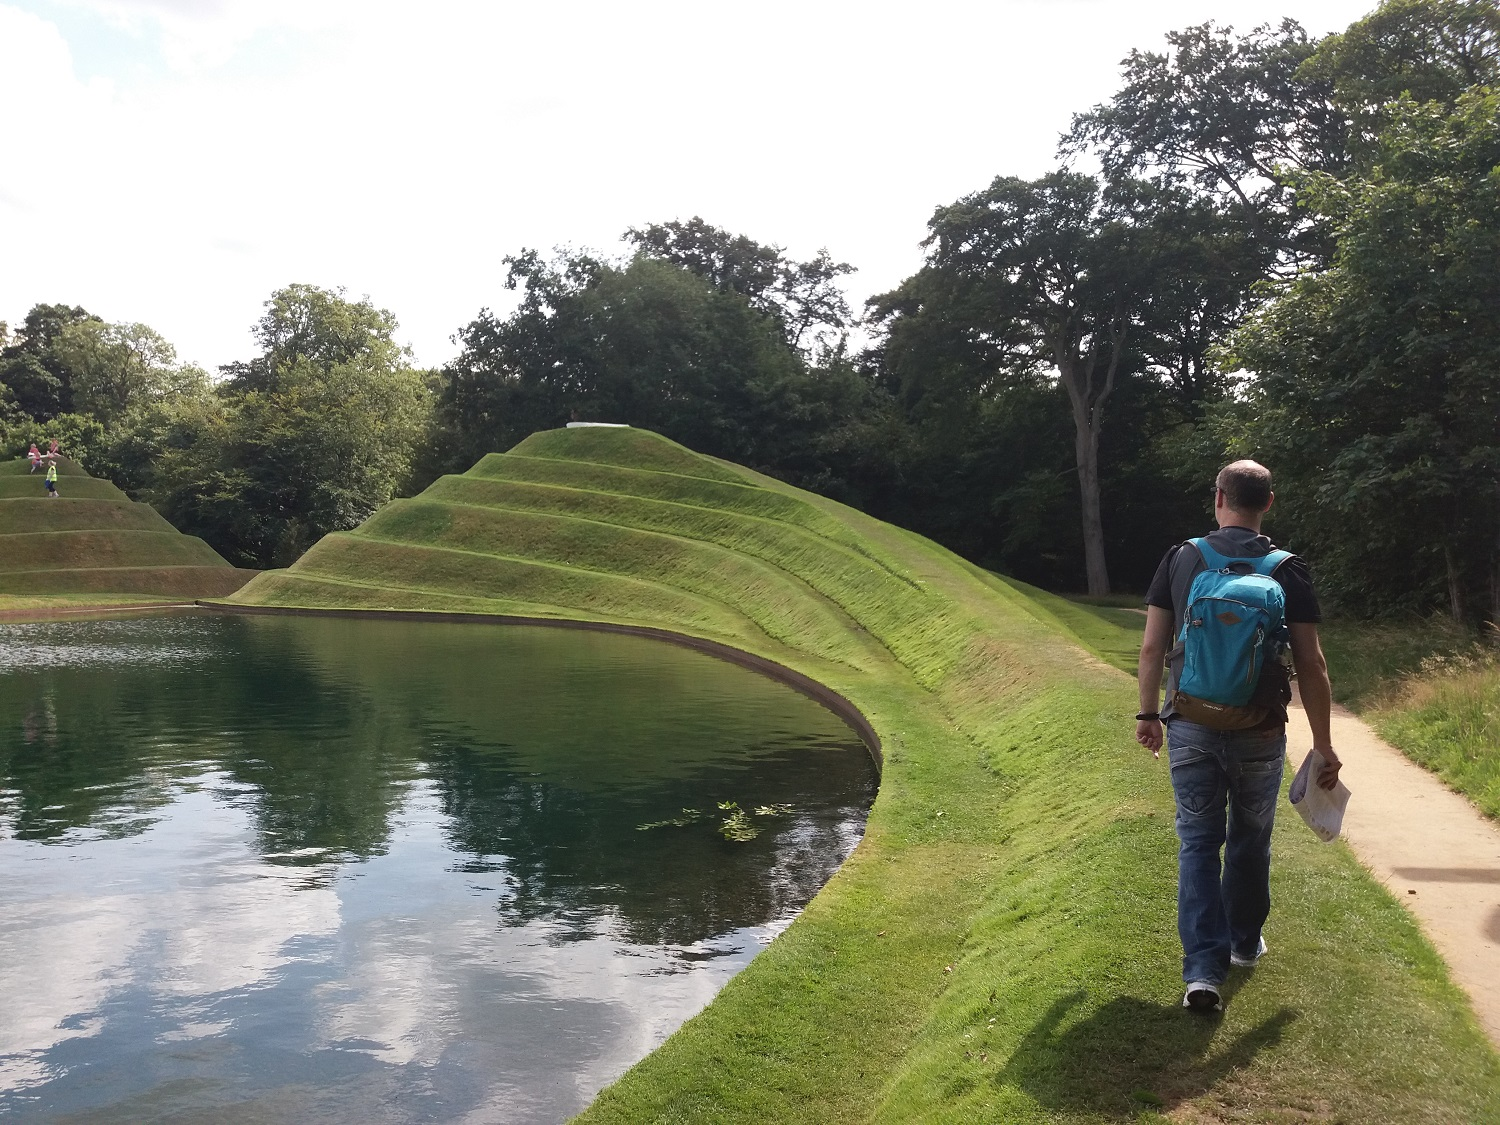 Jupiter Artland near Edinburgh